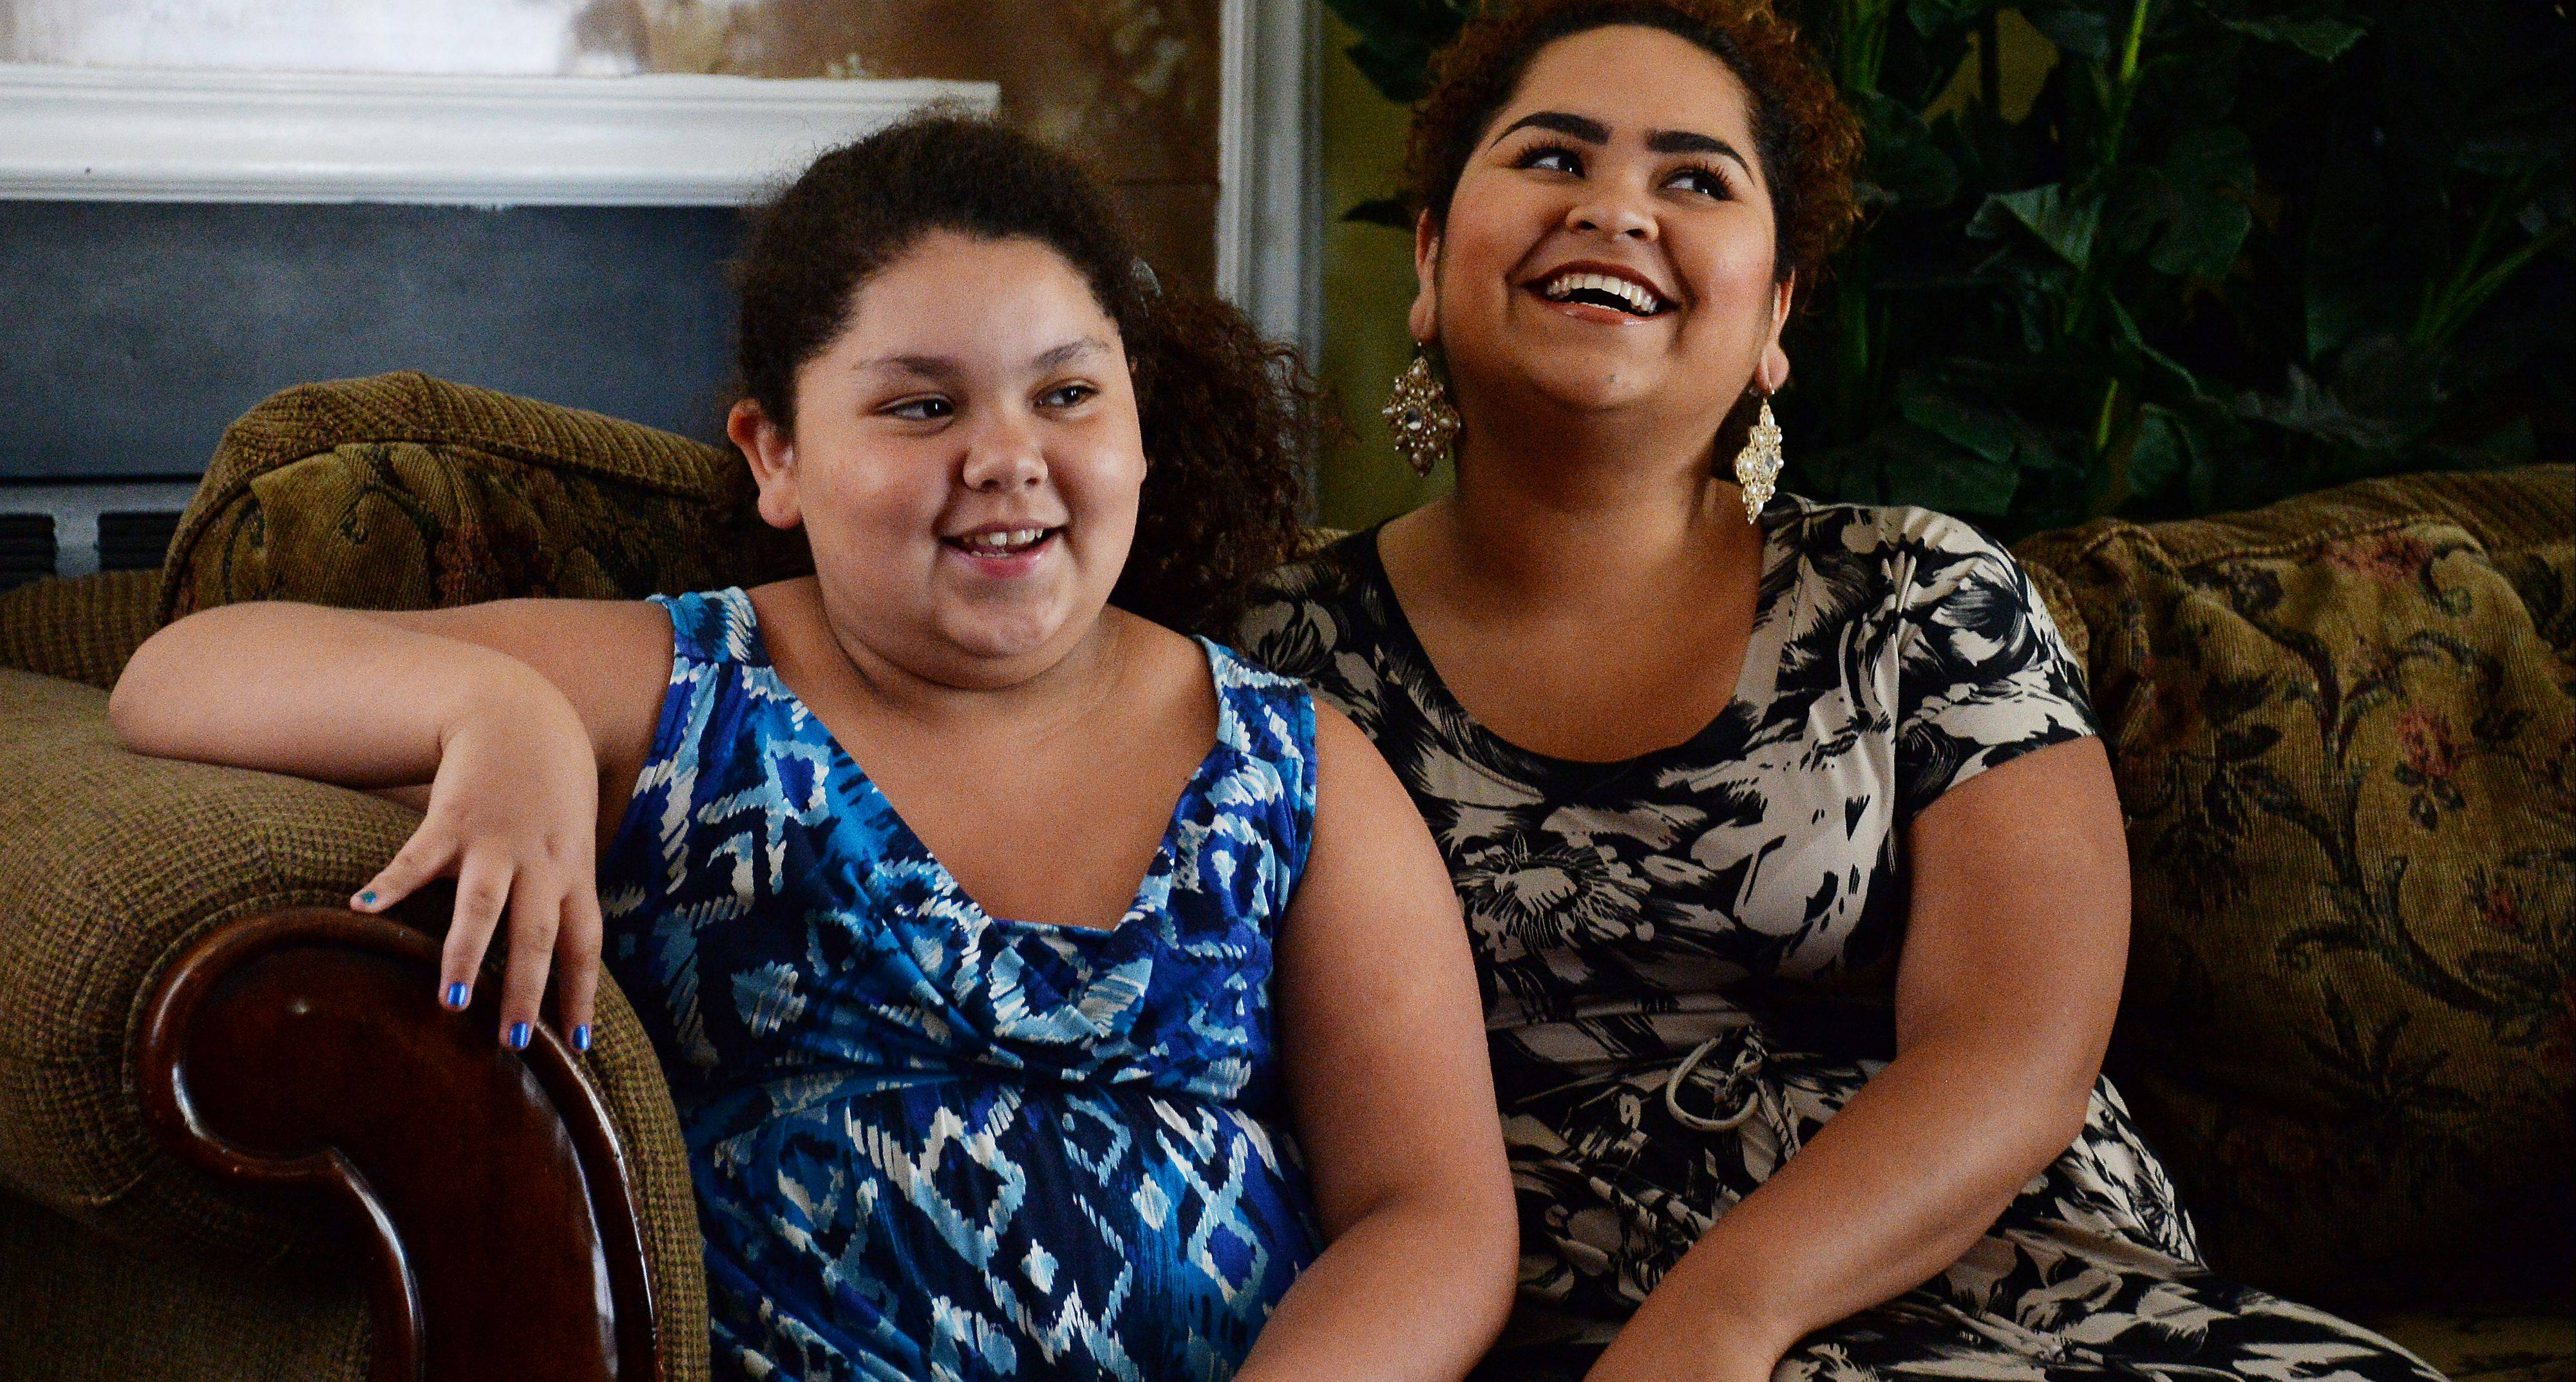 Love, determination and commitment to family helped keep Greta Ramirez, left, and her older sister Karen together after a family tragedy.